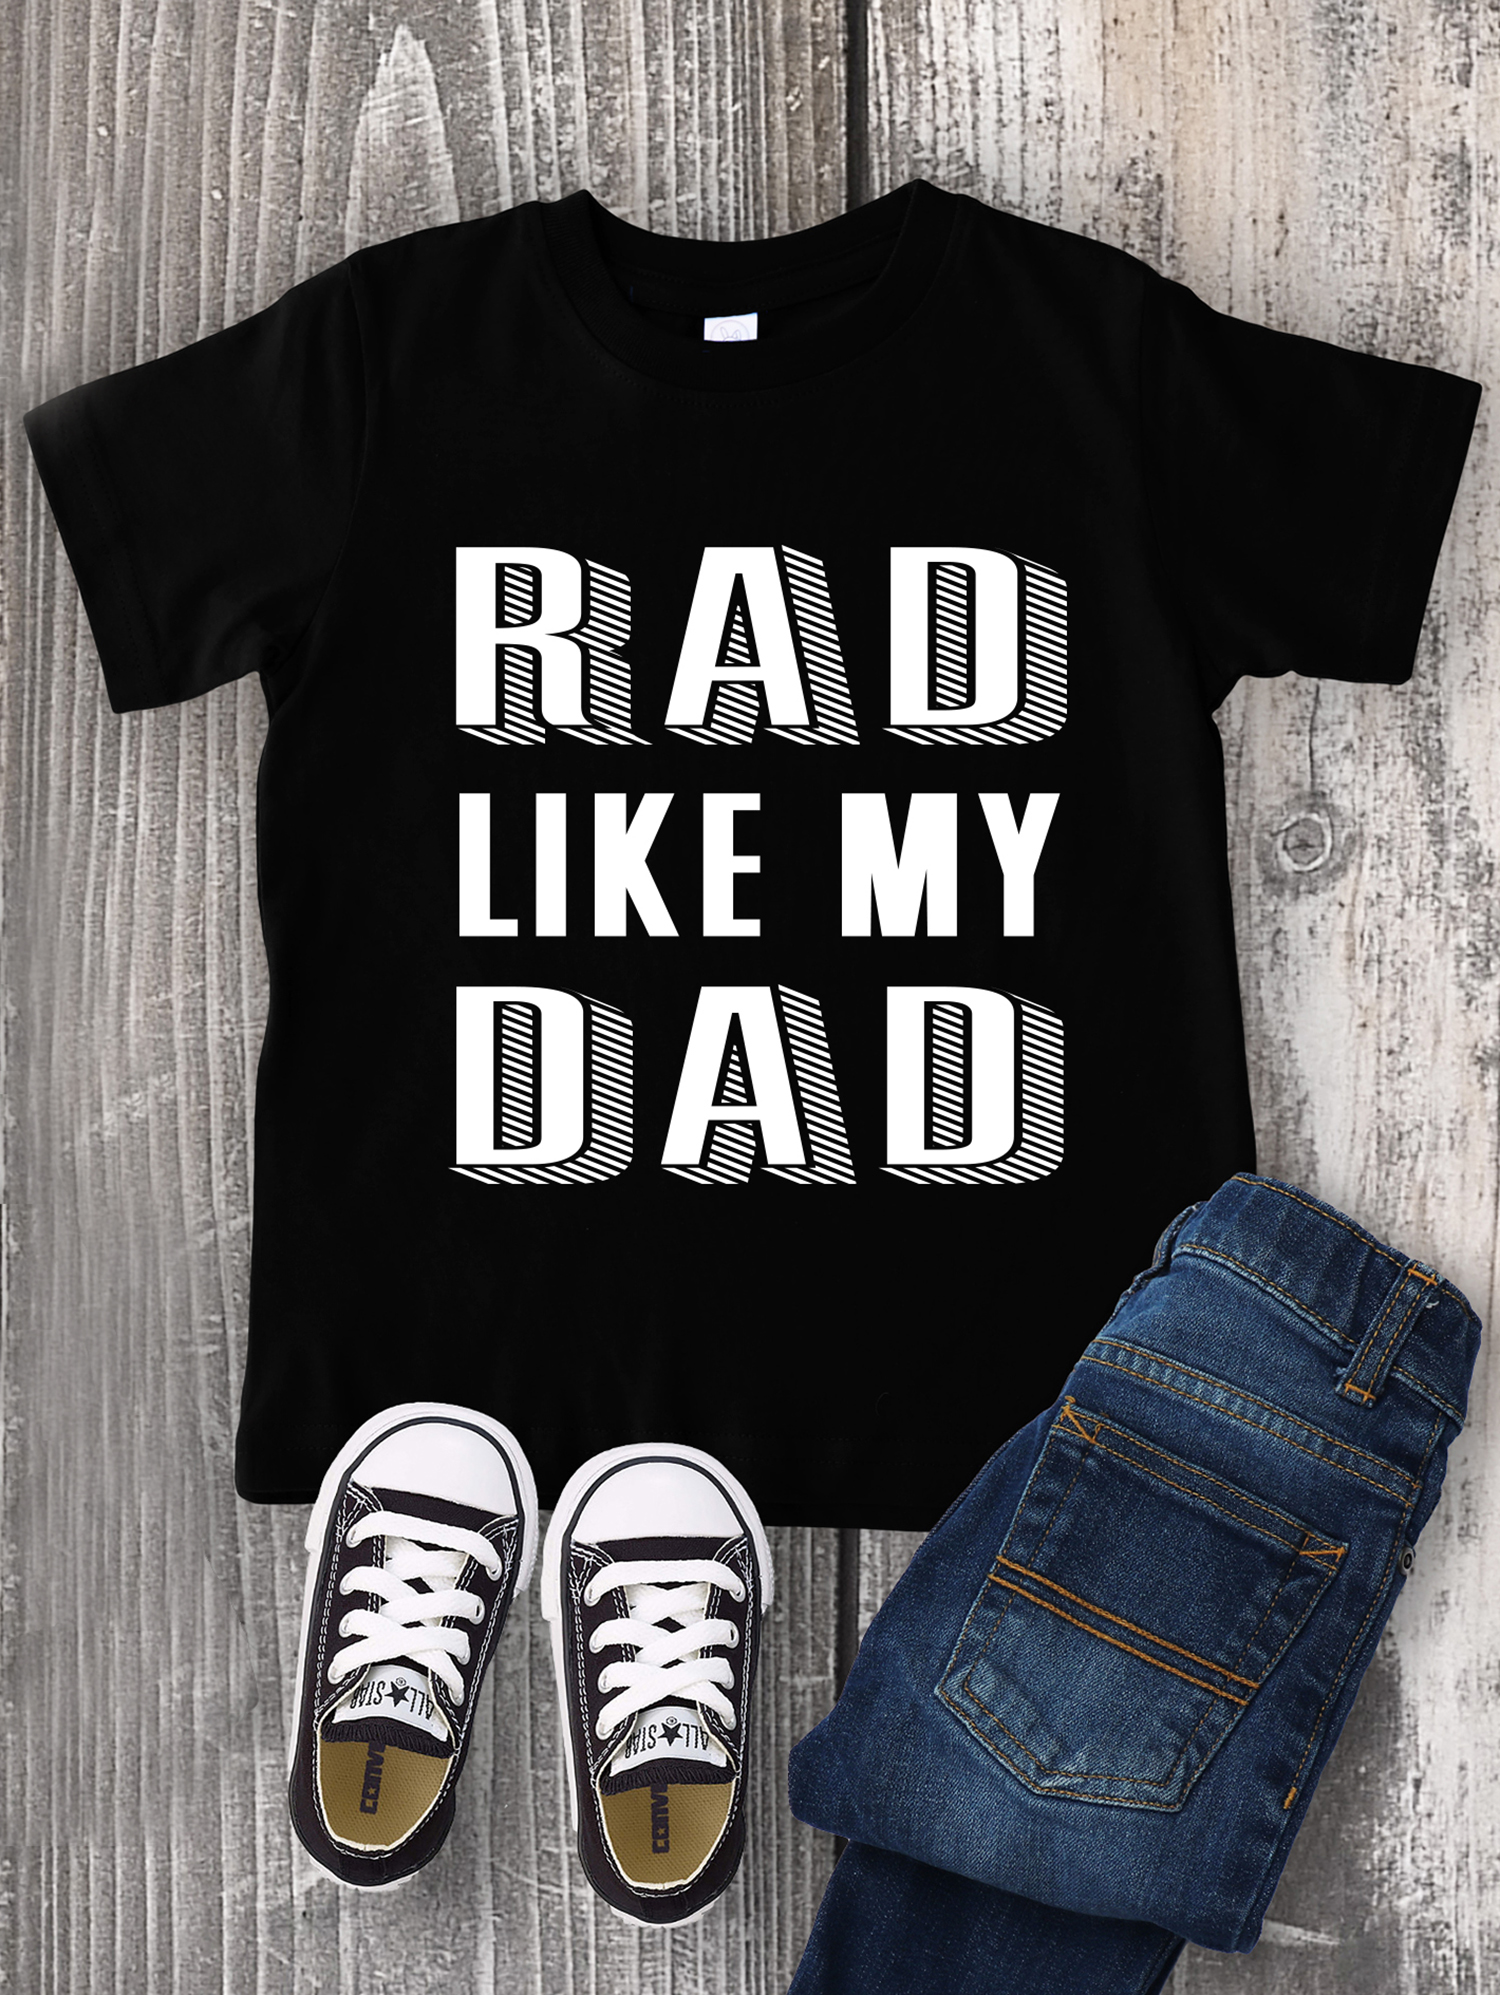 Rad Dad Father's Day Shirts + SVG Files - Happiness is ...